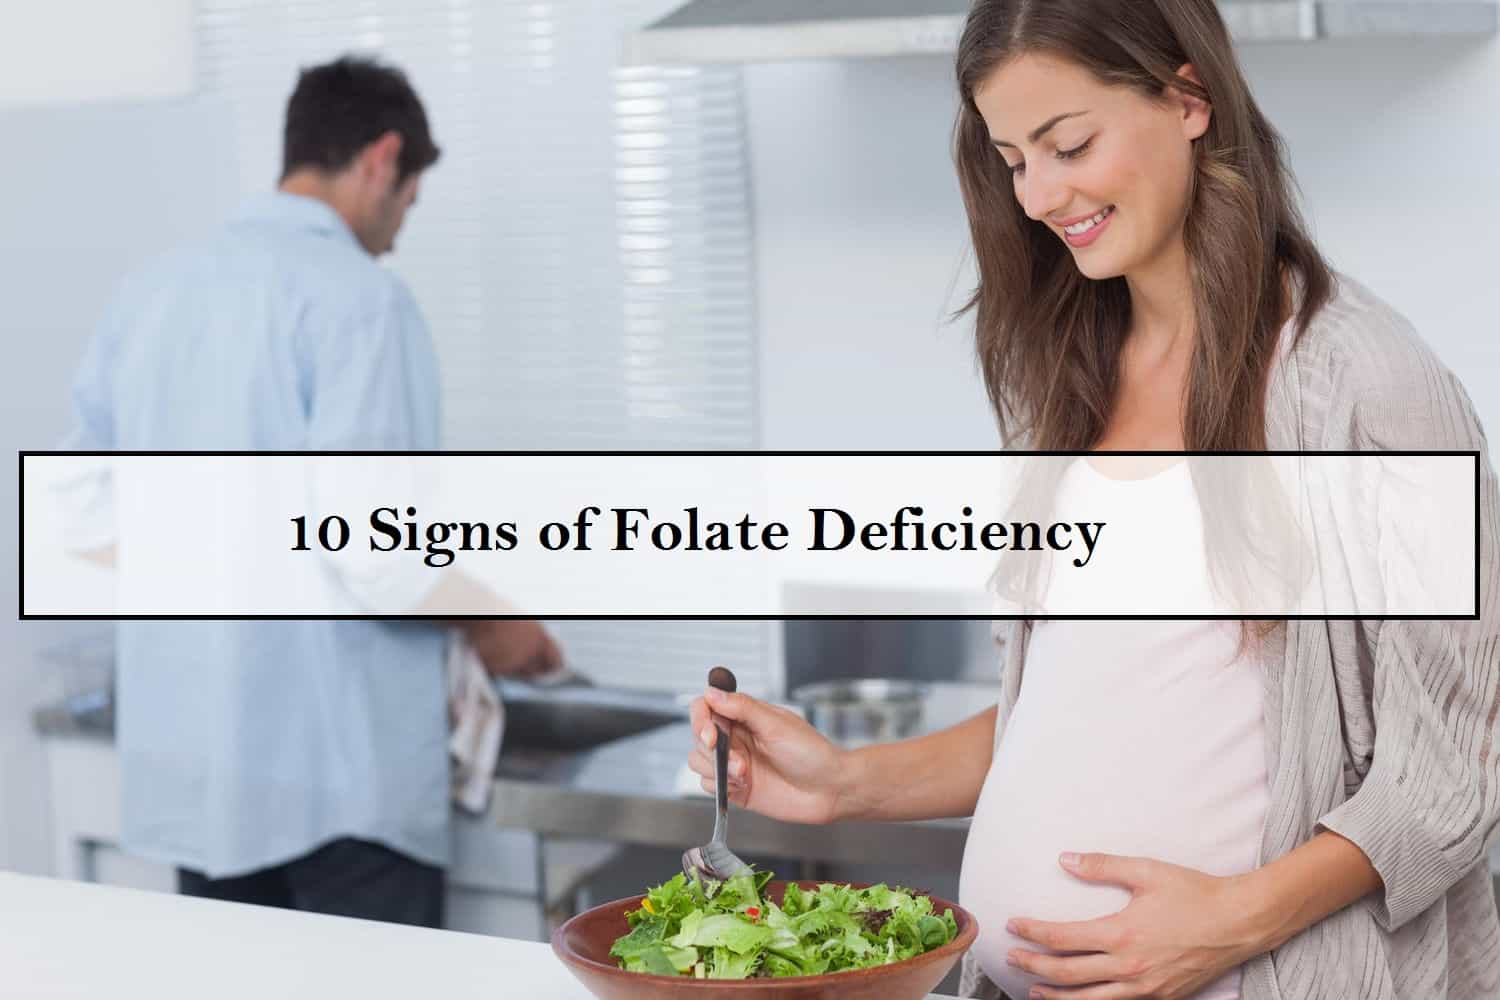 10 Signs of Folate Deficiency